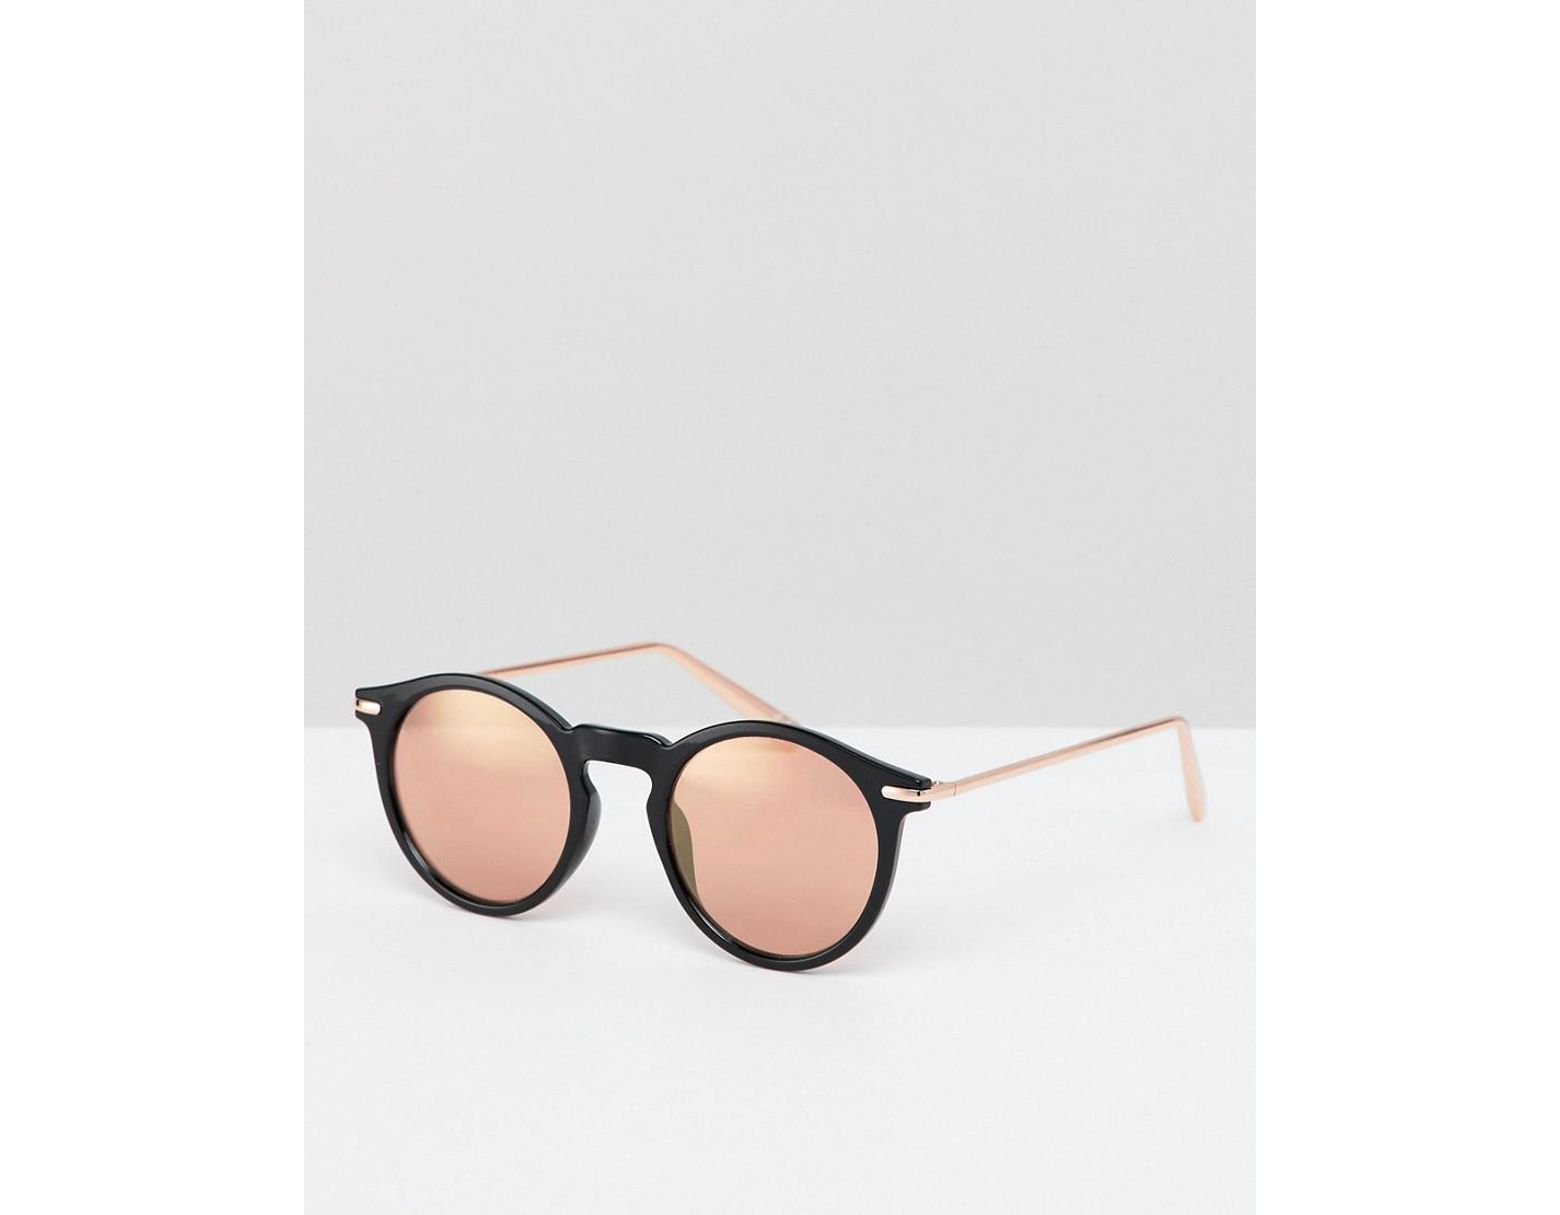 bcf6cc9f82f9 ASOS Round Sunglasses In Black With Rose Gold Mirrored Lens in Black ...